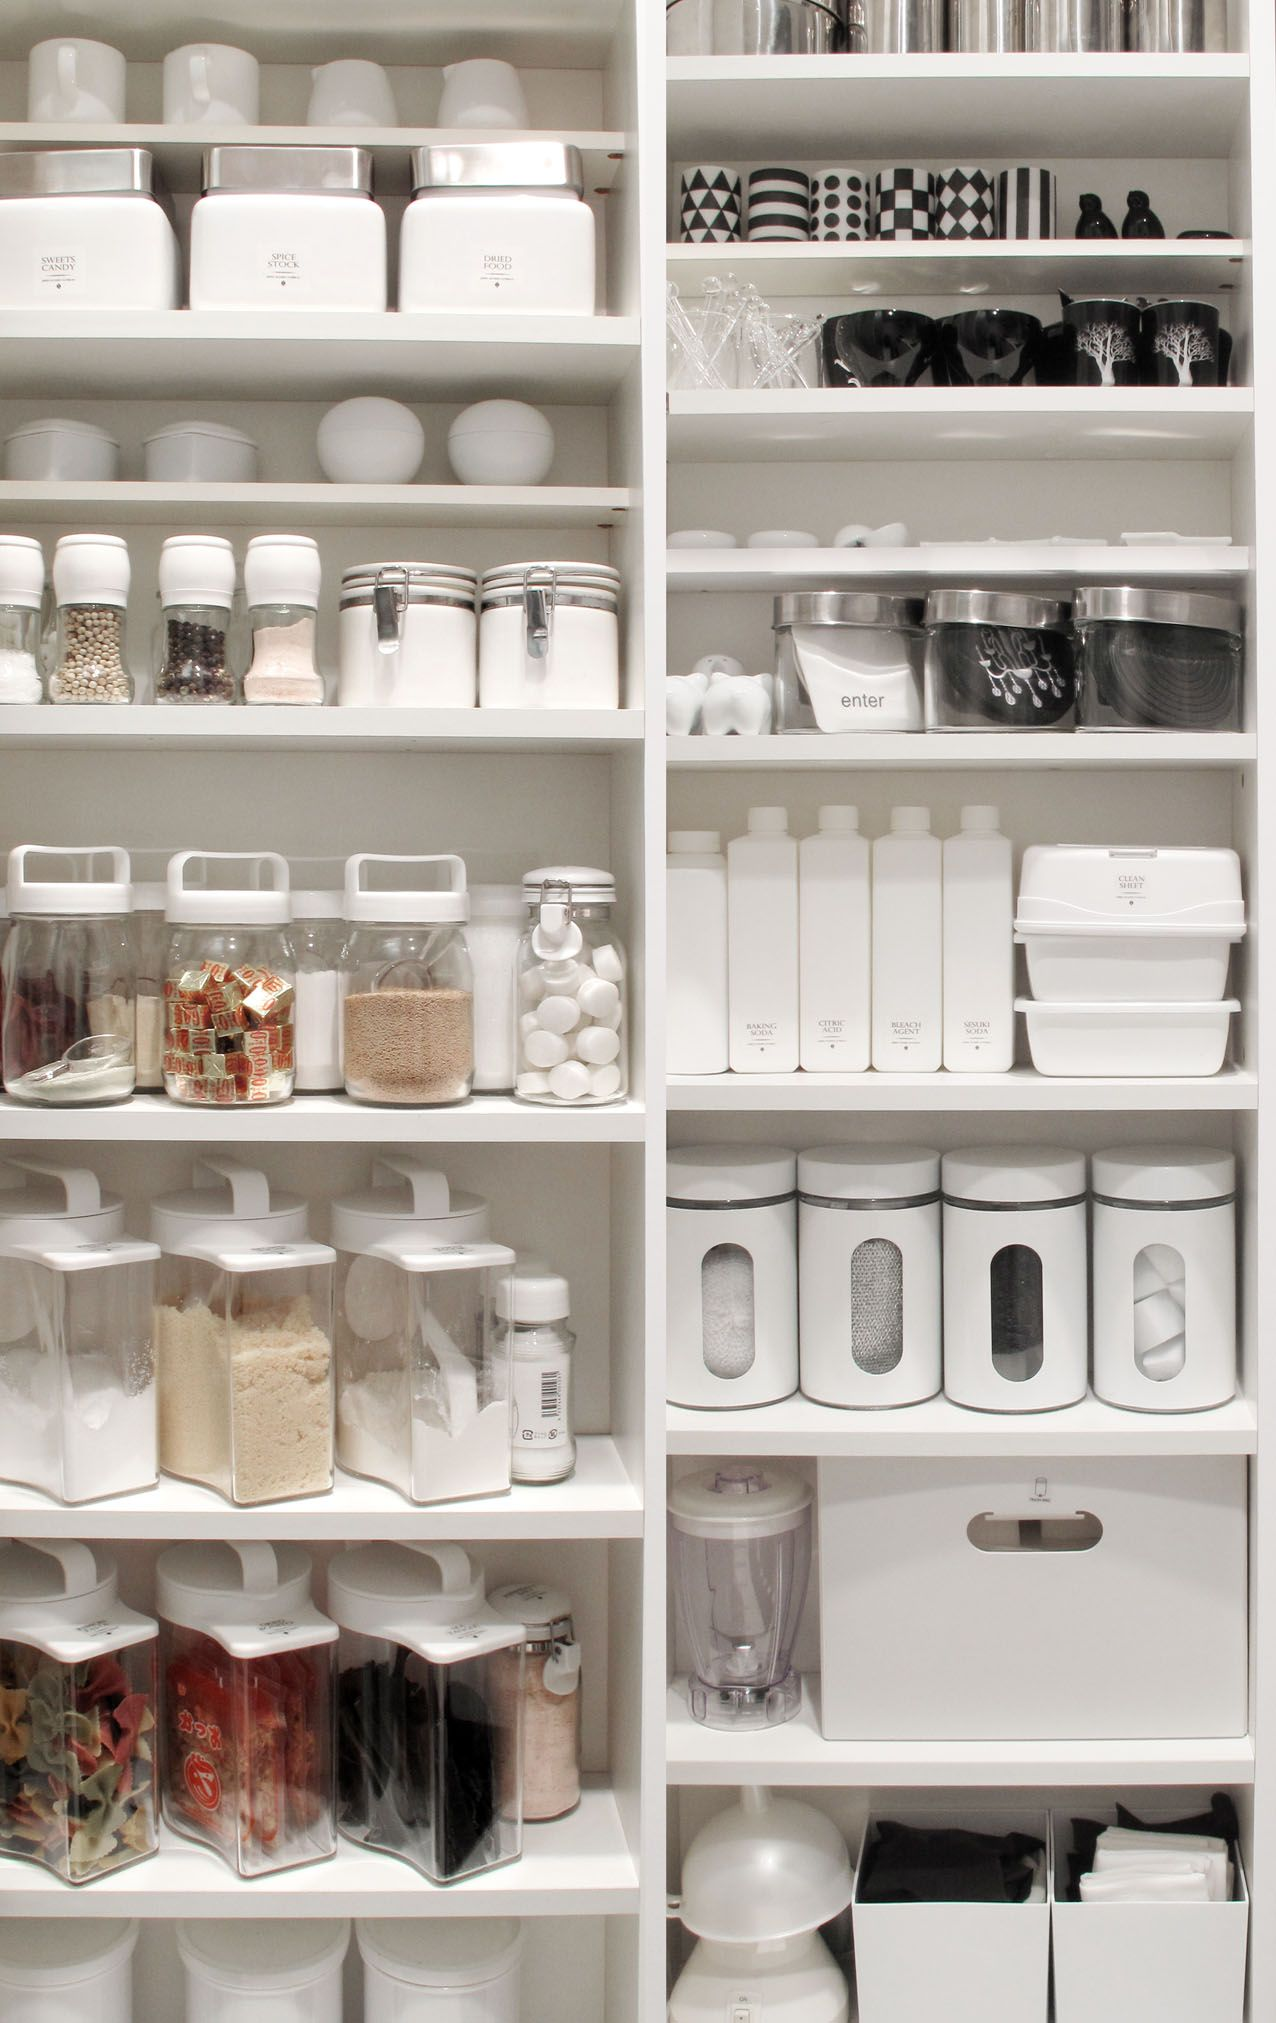 Ikea Küche Organisation Tips For A Perfectly Organized Pantry Home